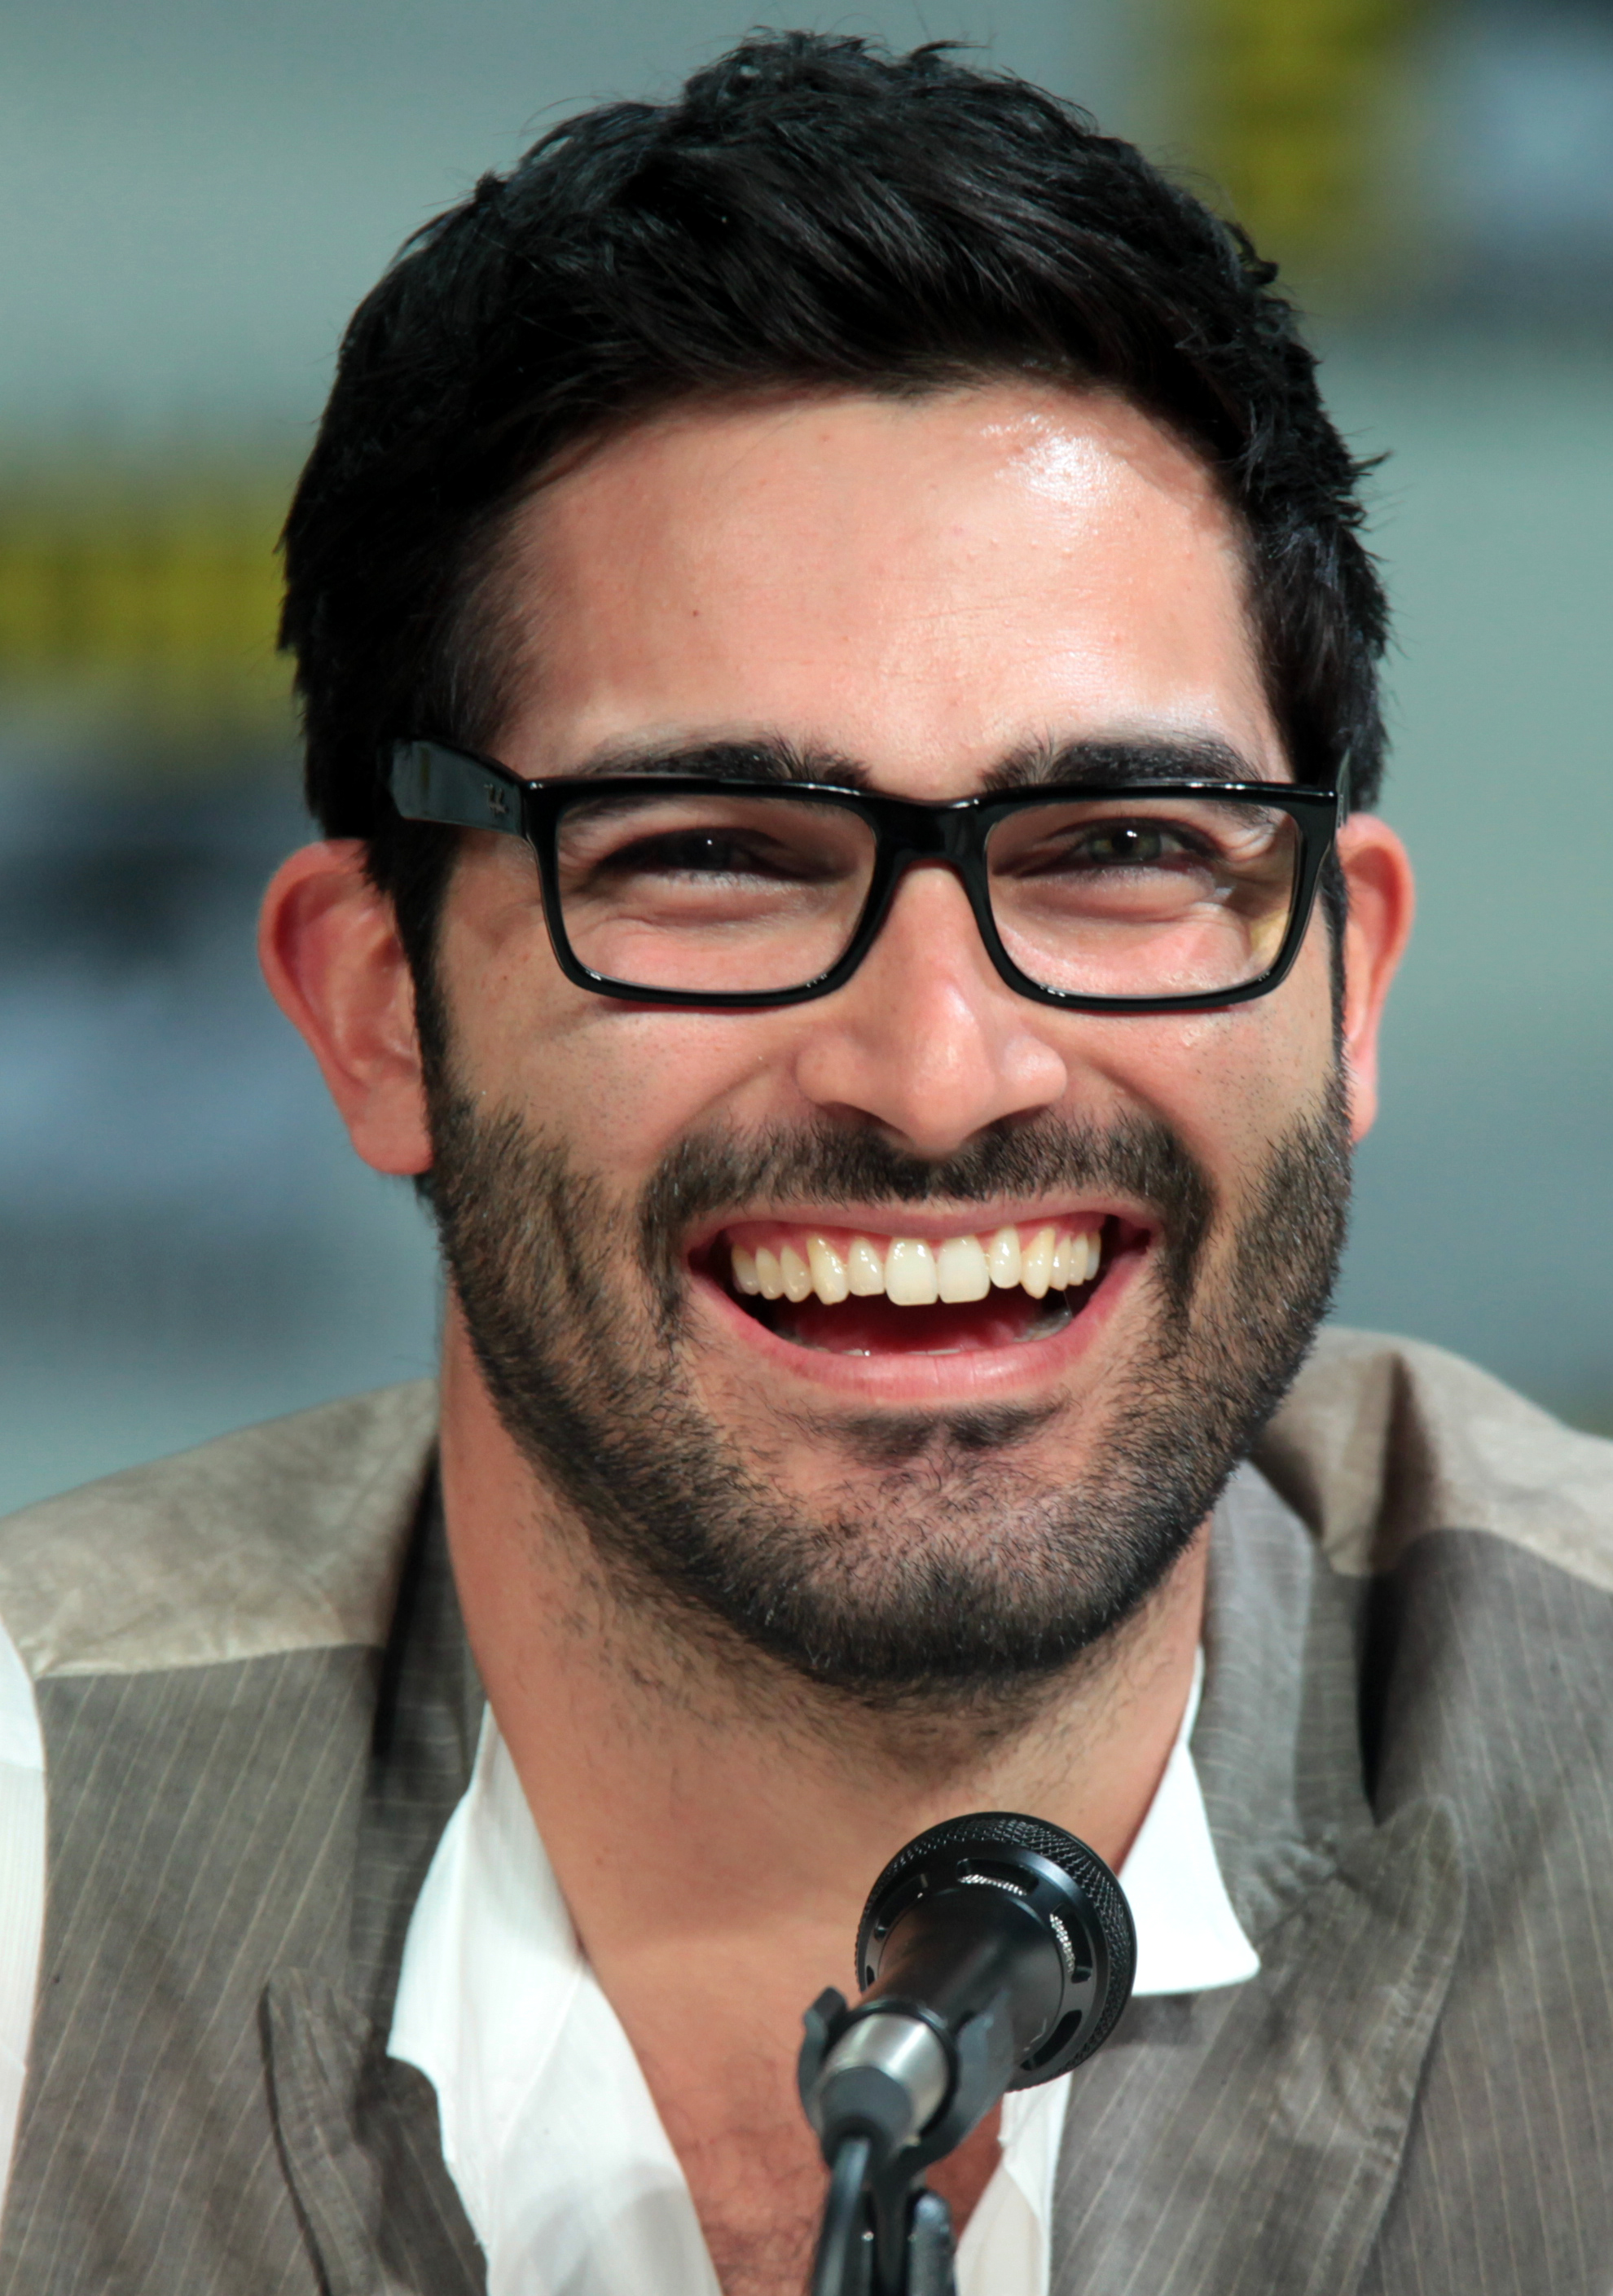 Tyler Hoechlin with glasses talking into a microphone